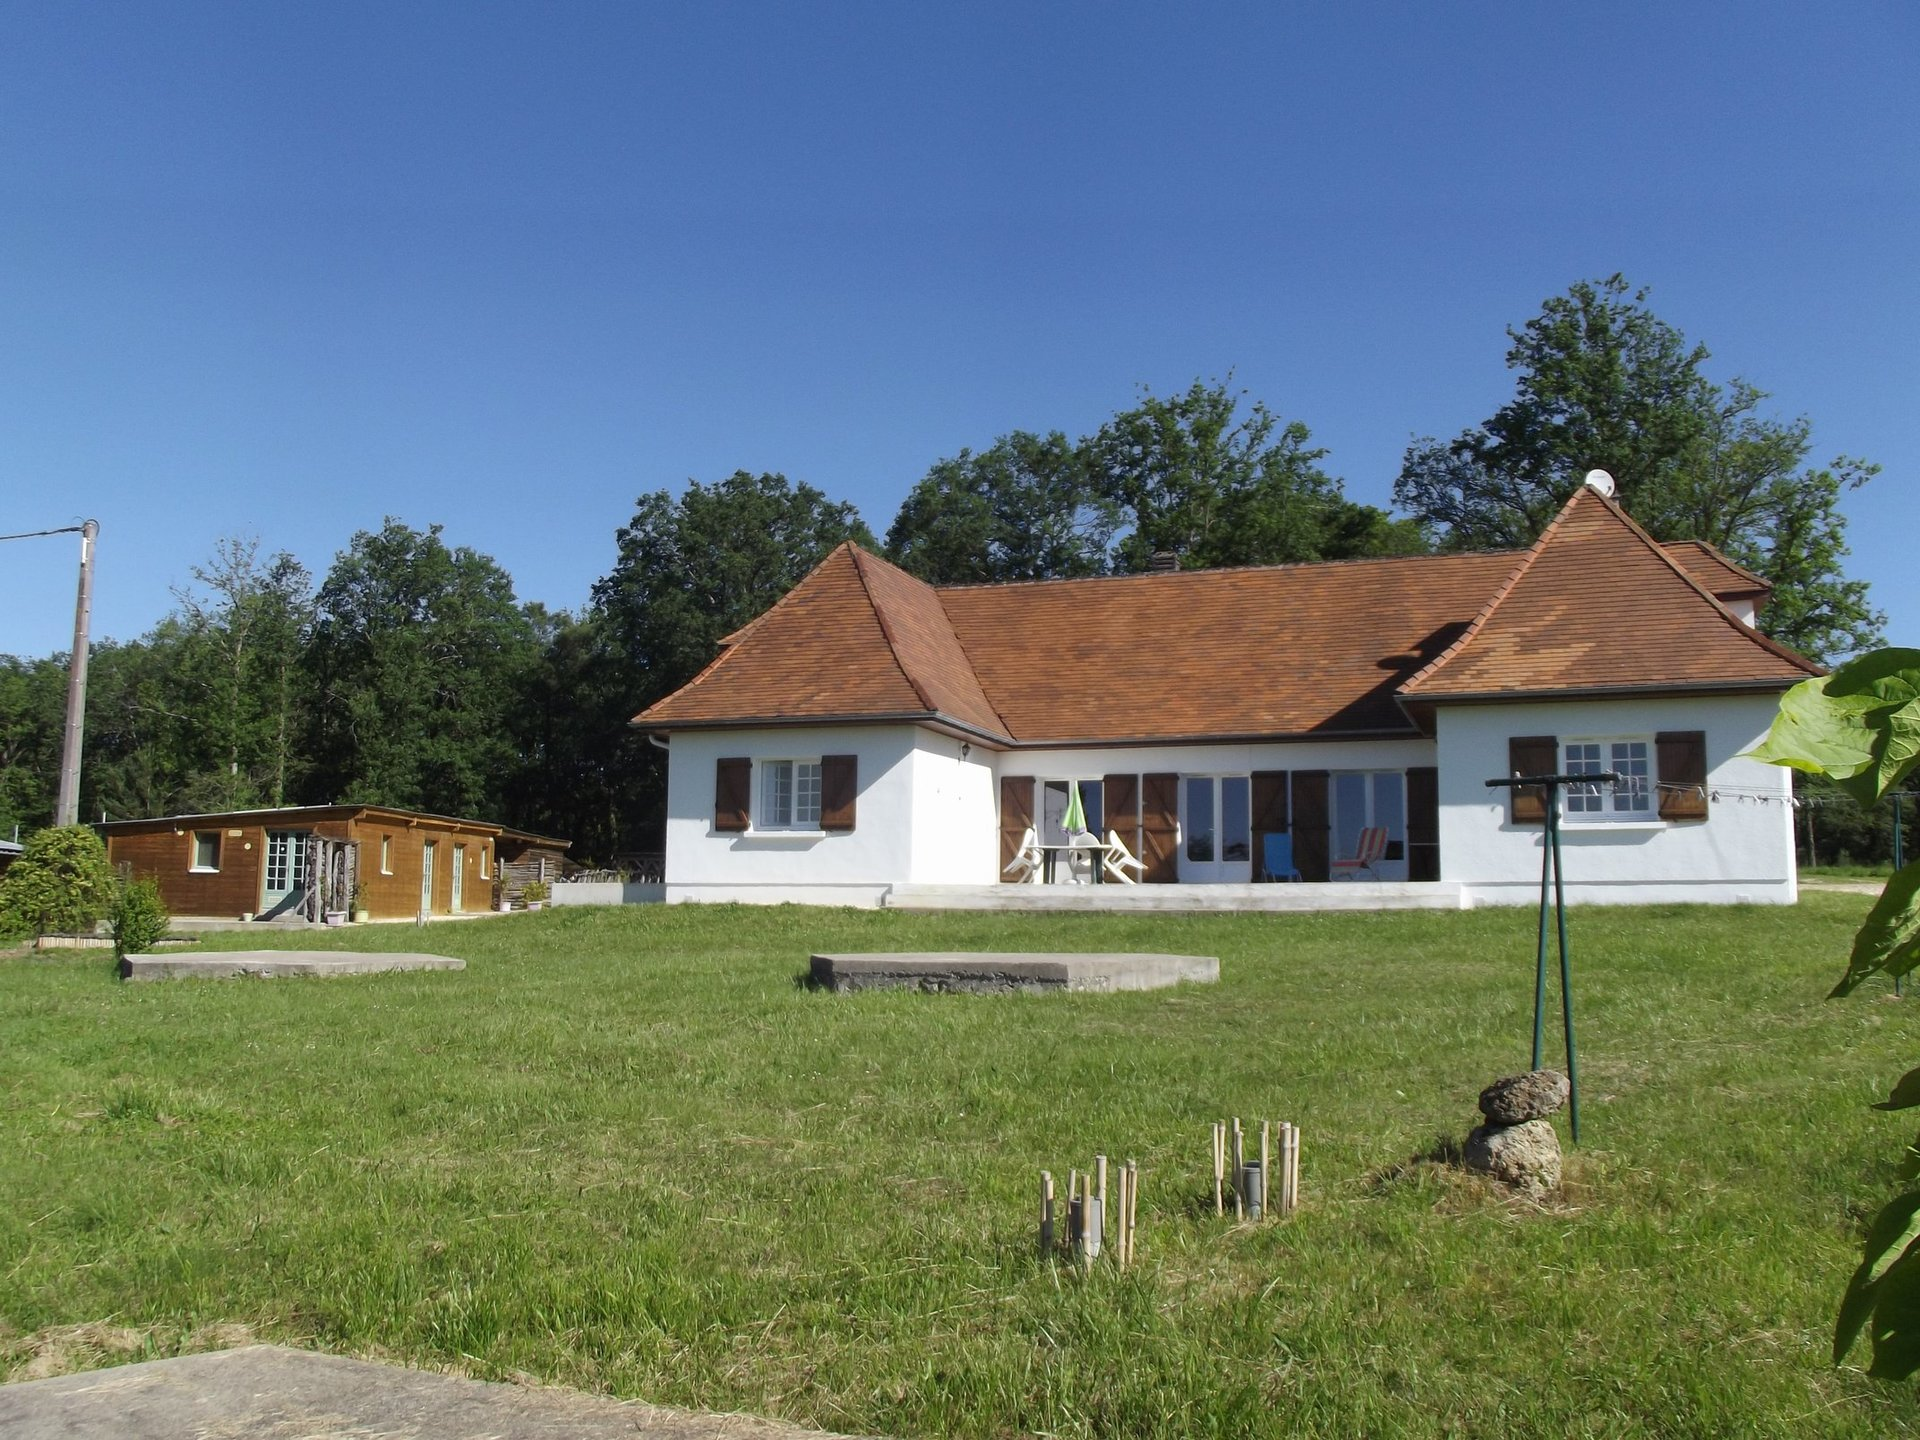 3 bedroom modern property with 3 wooden chalets and over 4 hectares of land with views